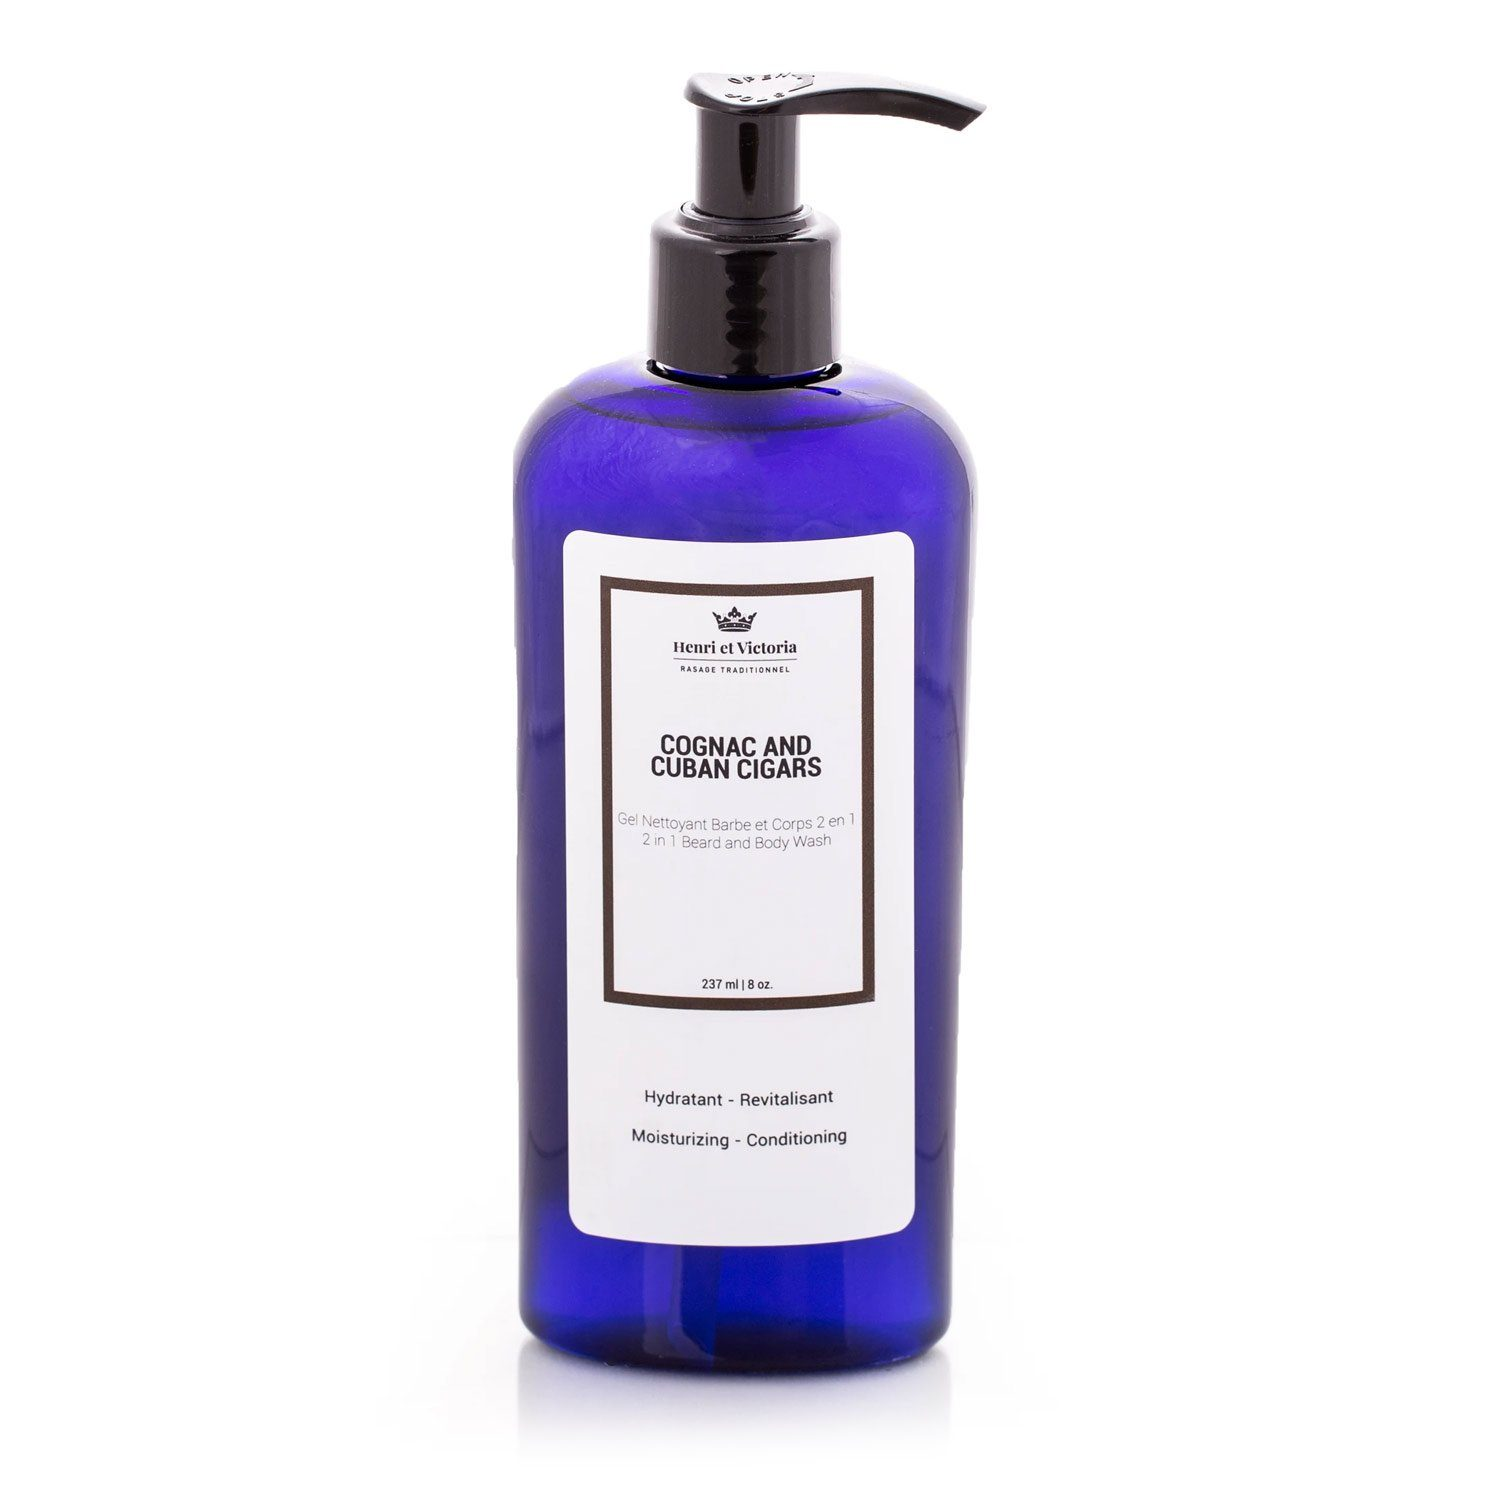 Henri et Victoria Body and Beard Wash Grooming Supplies Henri et Victoria Nautilus